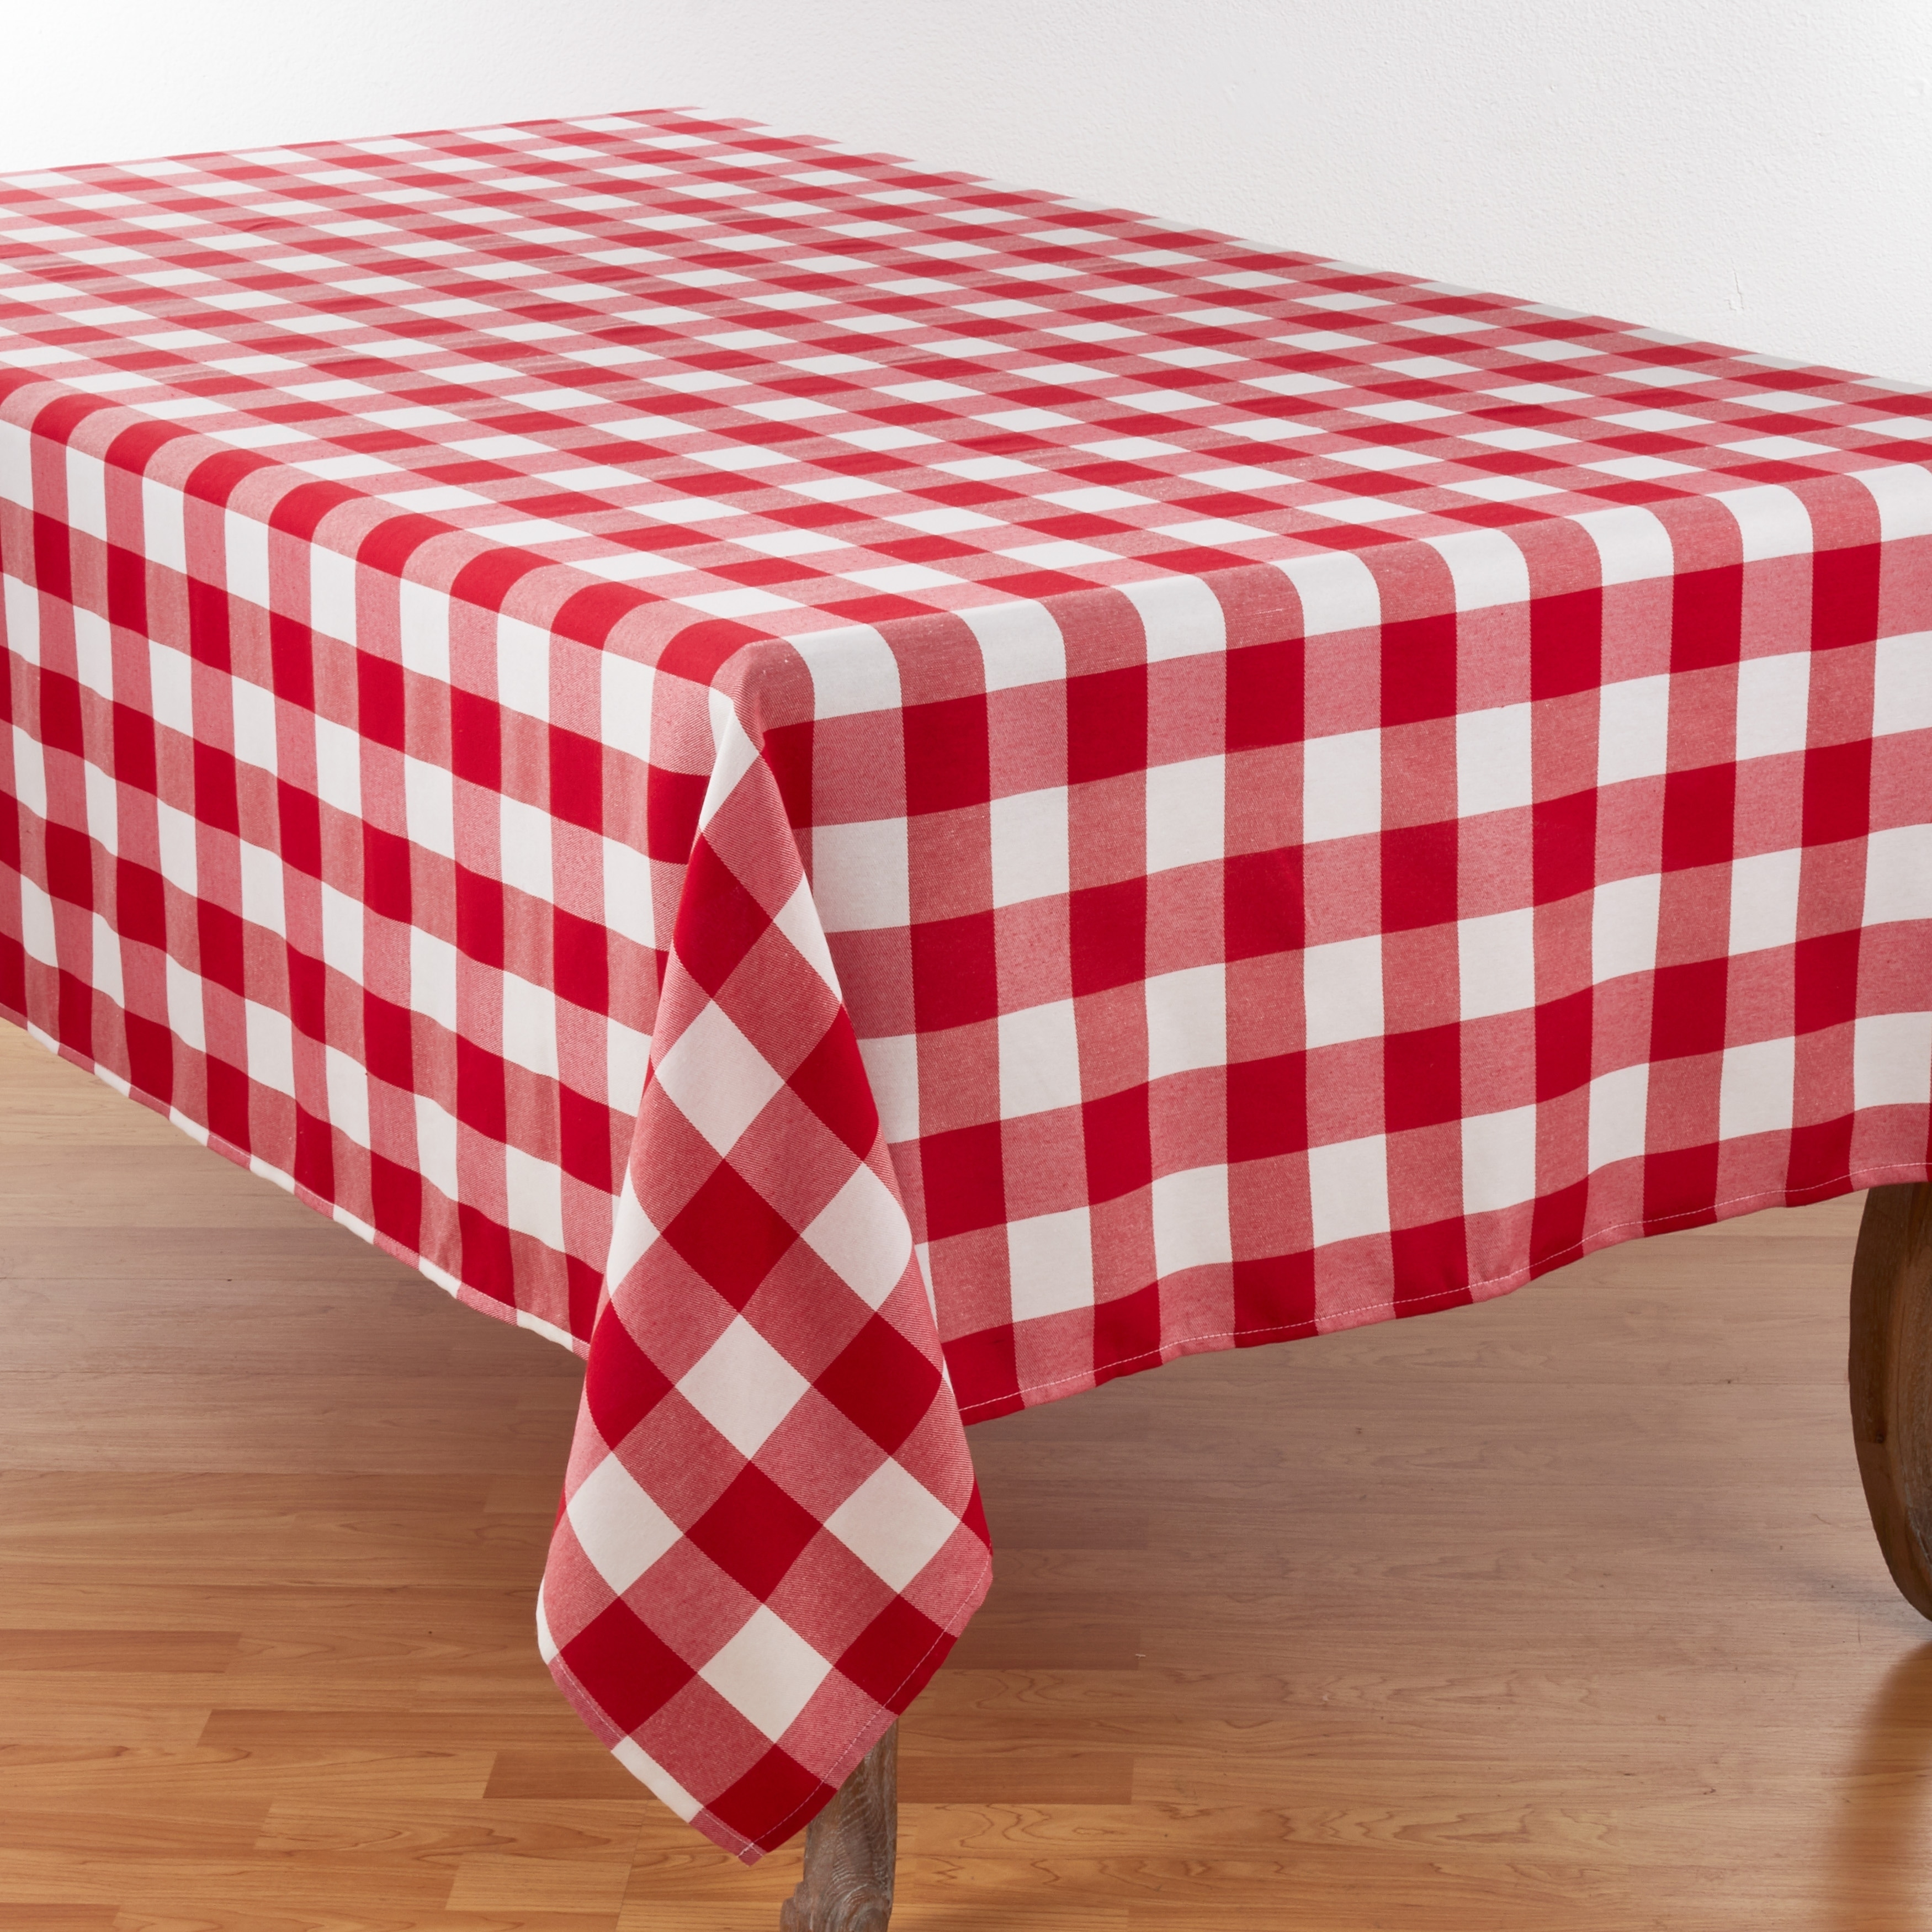 11ed94dfc90d7 Shop Buffalo Plaid Design Cotton Blend Tablecloth - Free Shipping On Orders  Over $45 - Overstock - 18057068